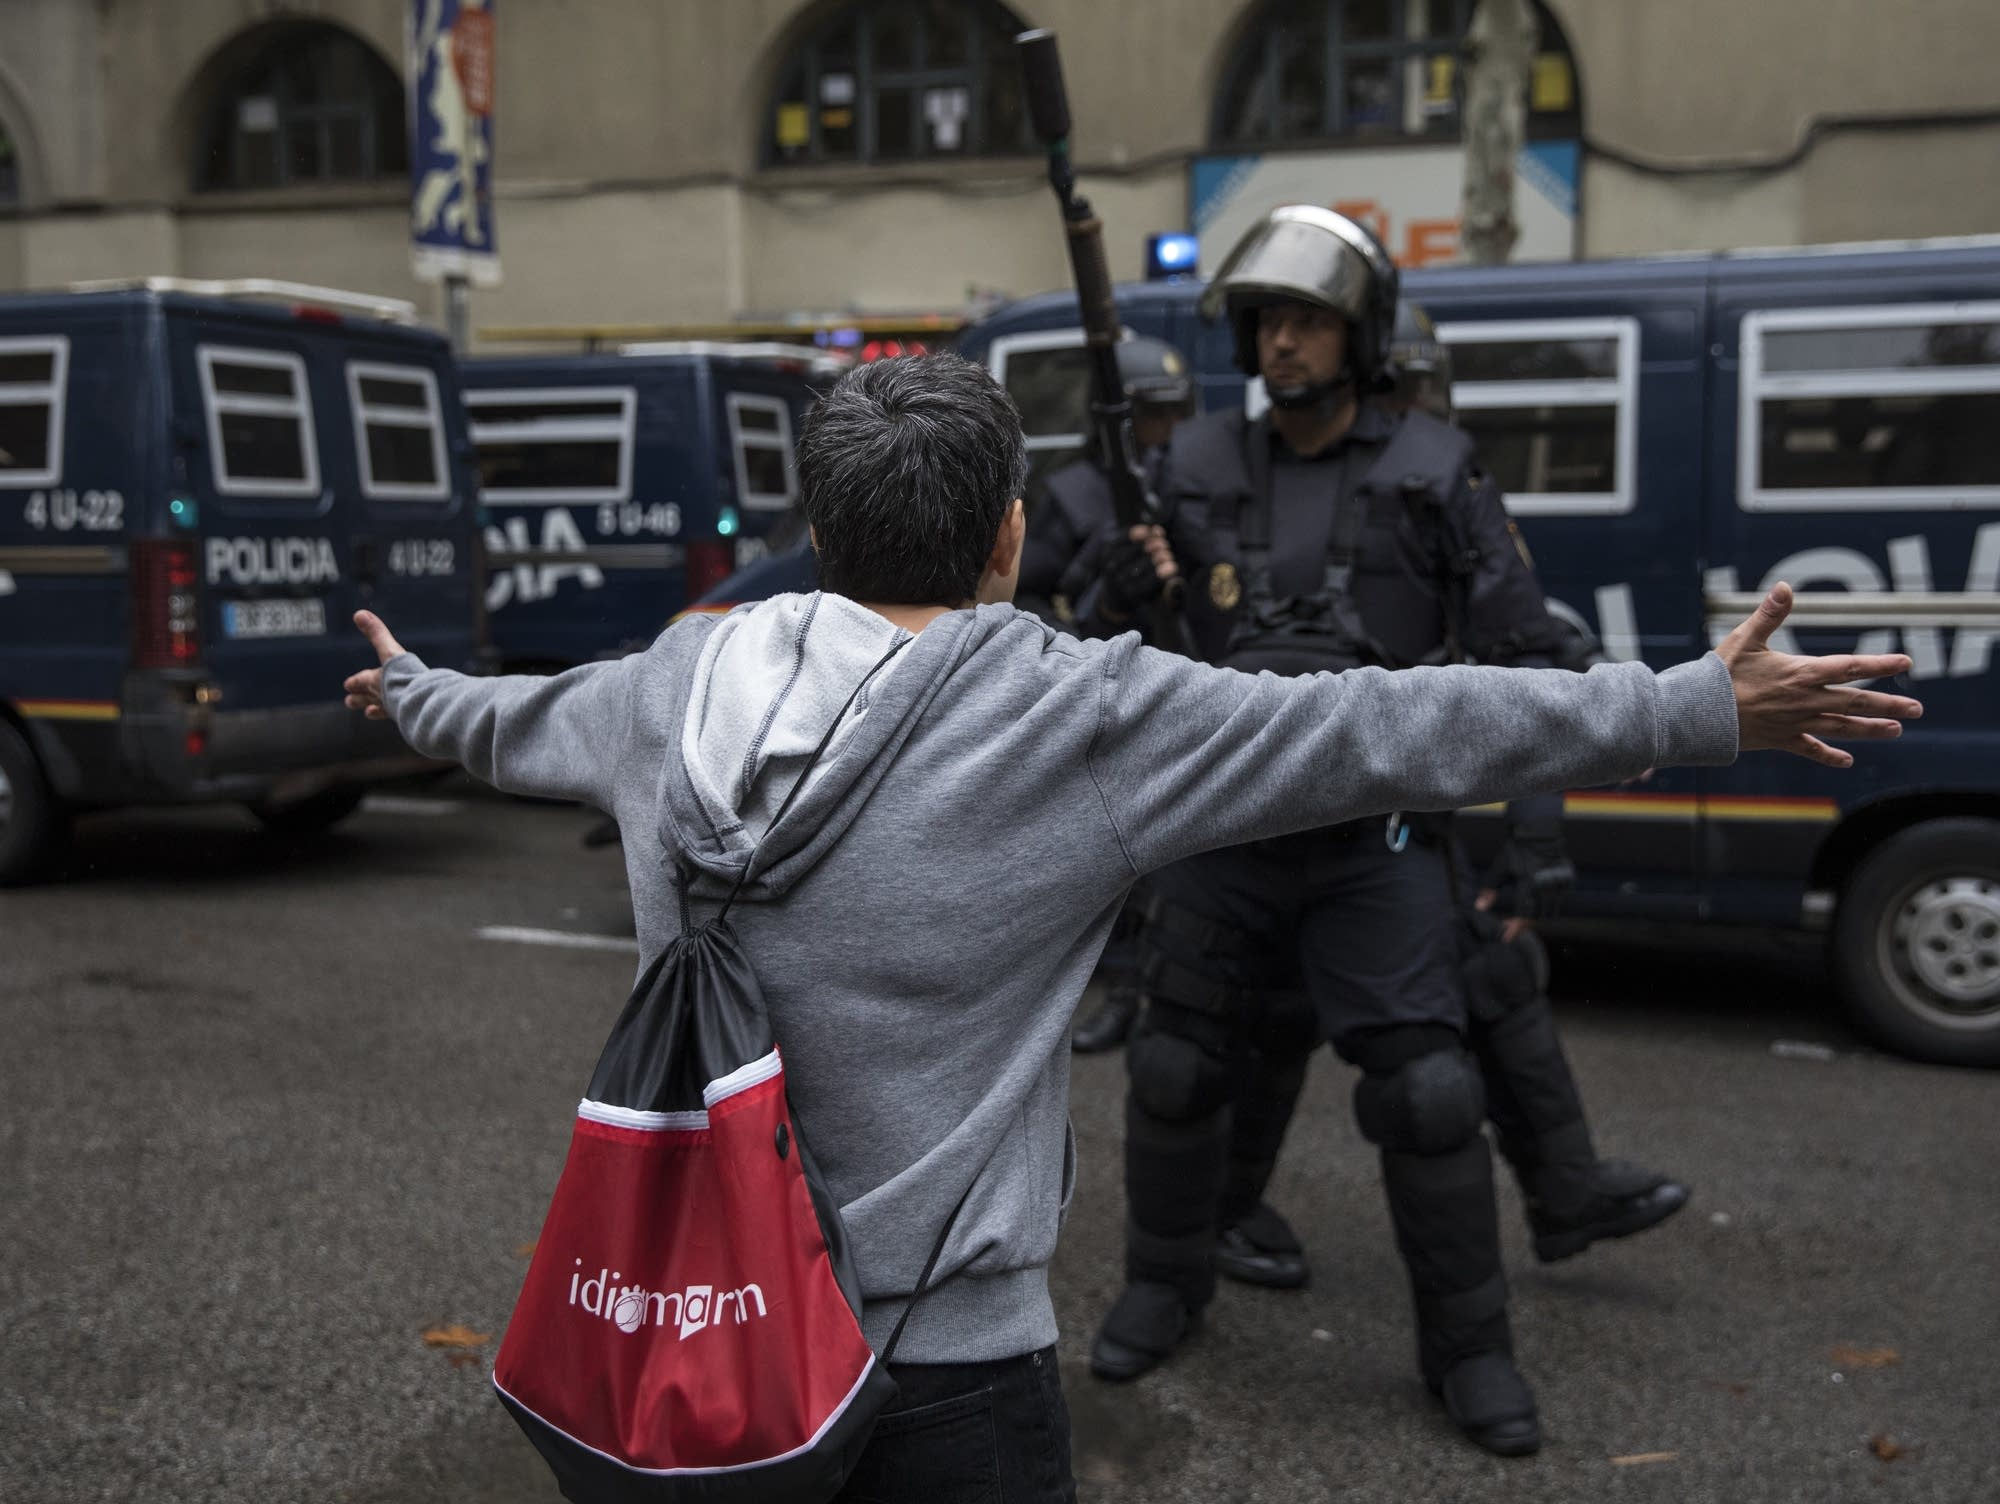 Pro-Referendum supporters clash with members of the Spanish National Police